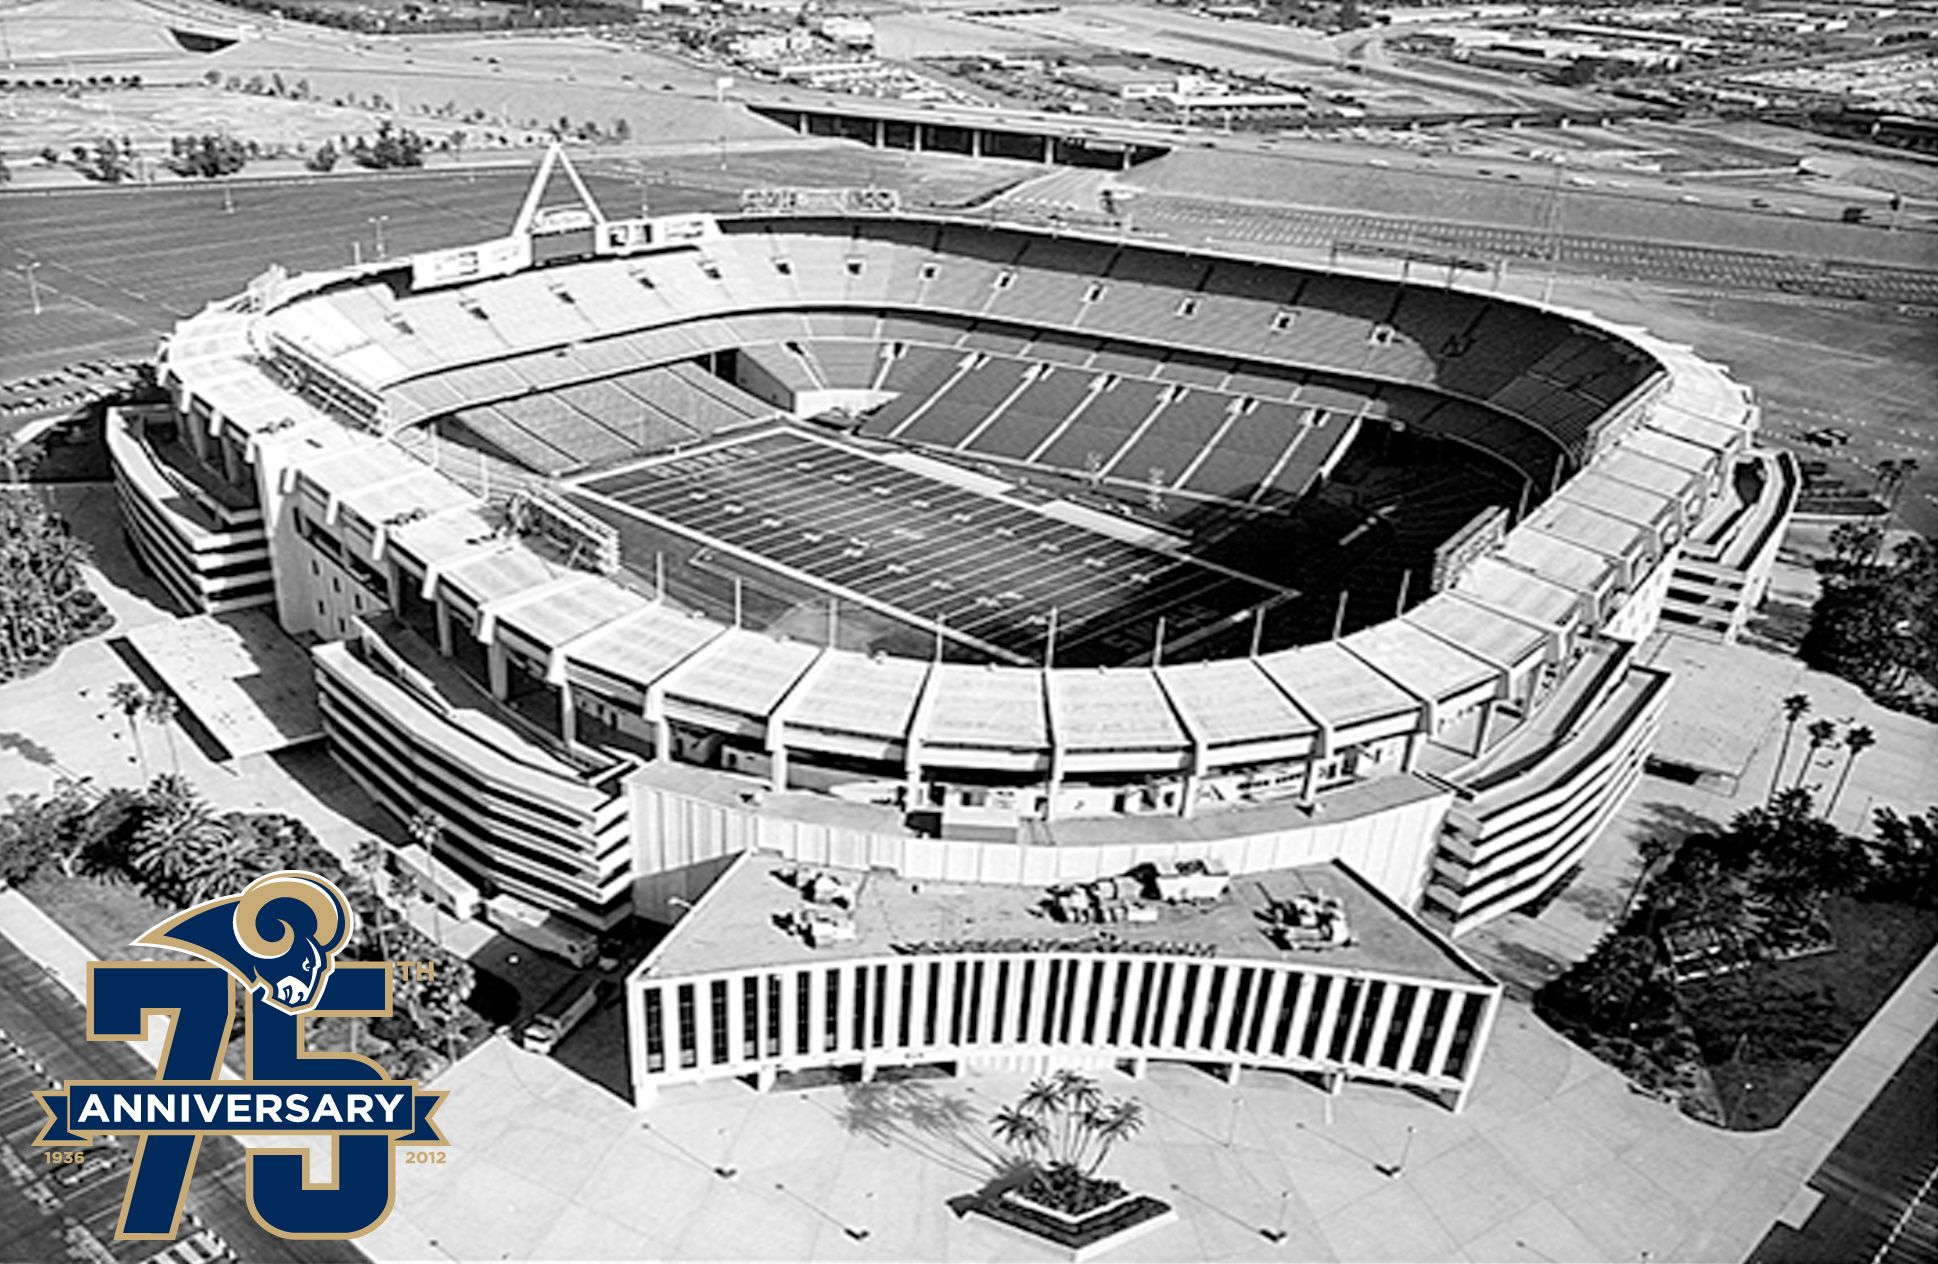 The Los Angeles Rams Called Anaheim Stadium Home From 1980 1994 The Stadium Opened In 1966 And Had Alre Nfl Stadiums Anaheim Angels Baseball Baseball Stadium